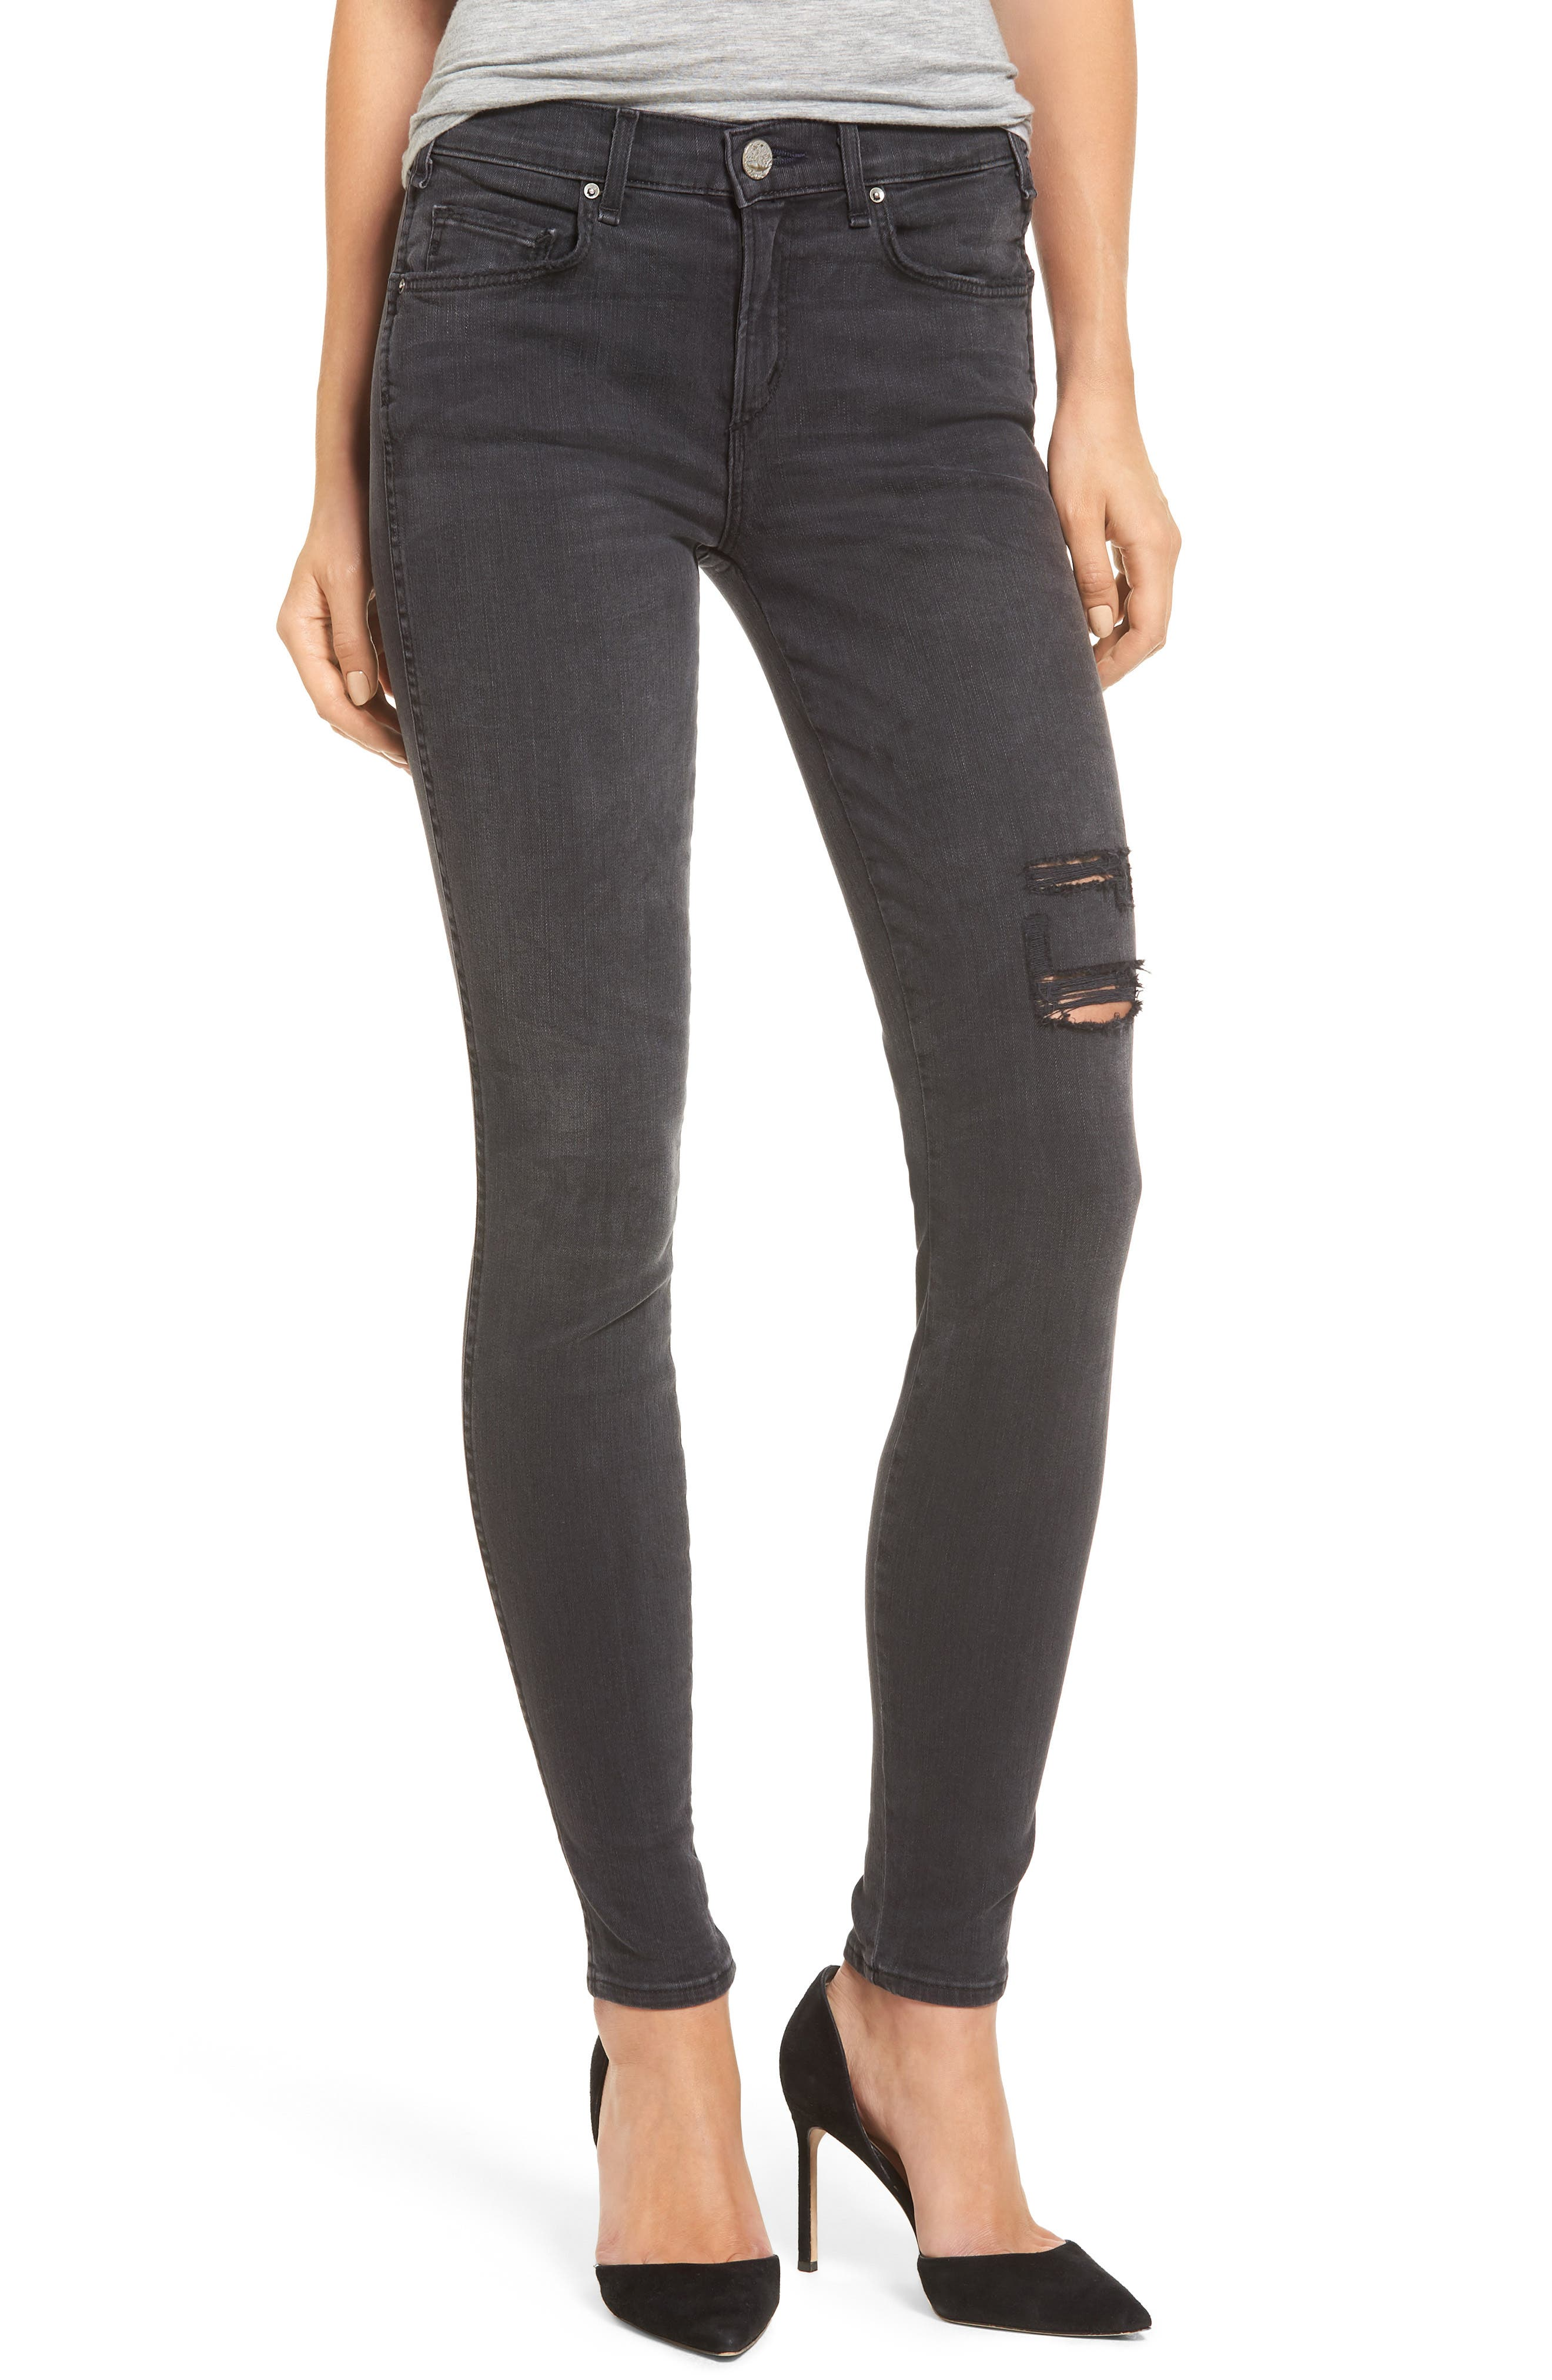 Newton Skinny Jeans,                         Main,                         color, Las Pozas